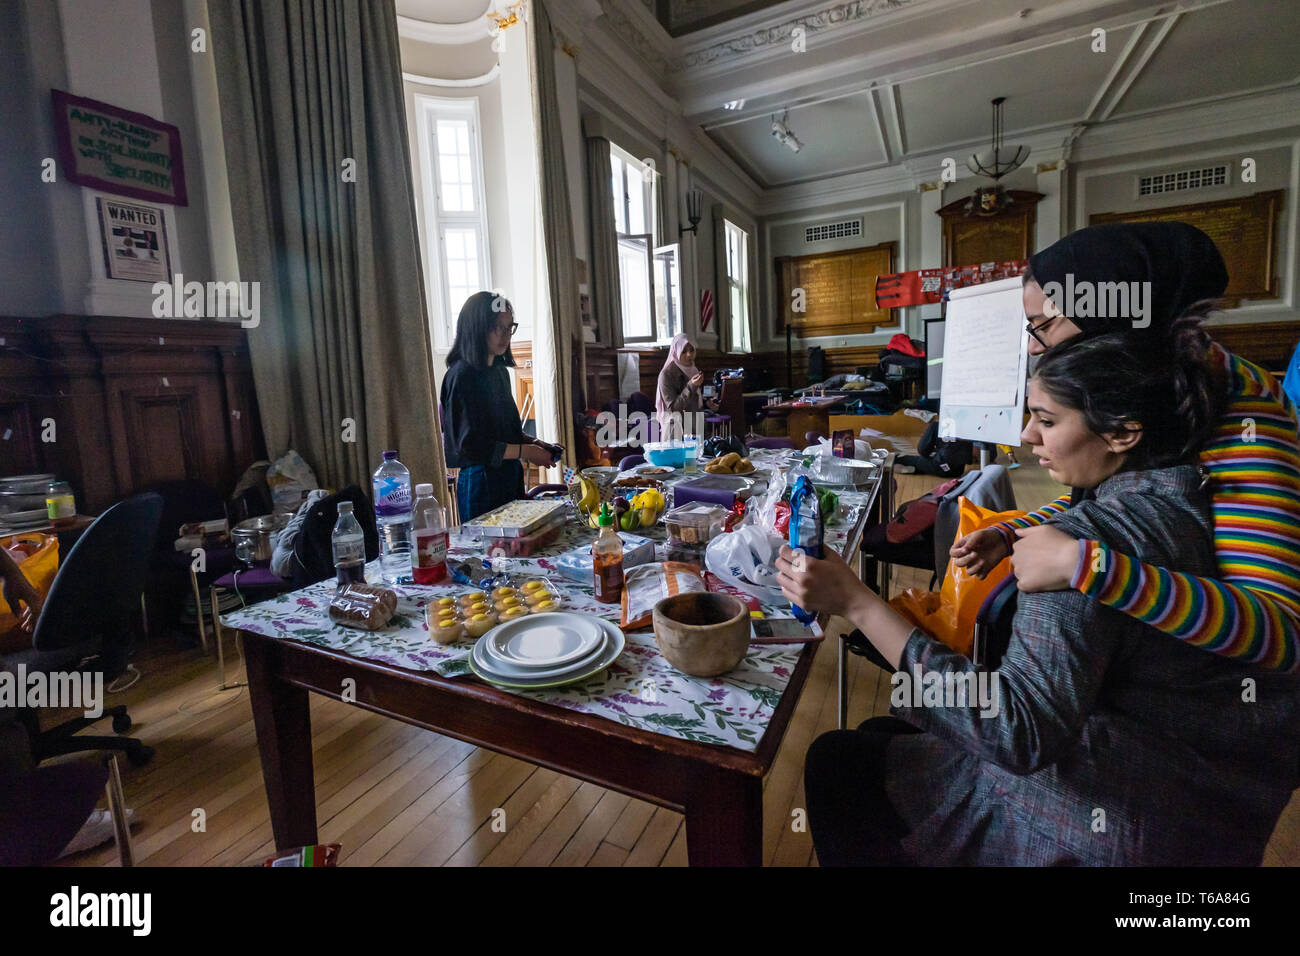 London, UK. 30th April 2018. Goldsmiths Anti-Racist Action celebrate 50 days of occupation of the management building, the former Deptford Town Hall and prepare food for a party. The occupation began when the university failed to respond adequately to racist abuse of a candidate in the student elections. Students claim the university fails to treat BAME students and workers fairly, and among other demands insist Goldsmiths produces a strategic plan to tackle racism. Credit: Peter Marshall/Alamy Live News Stock Photo